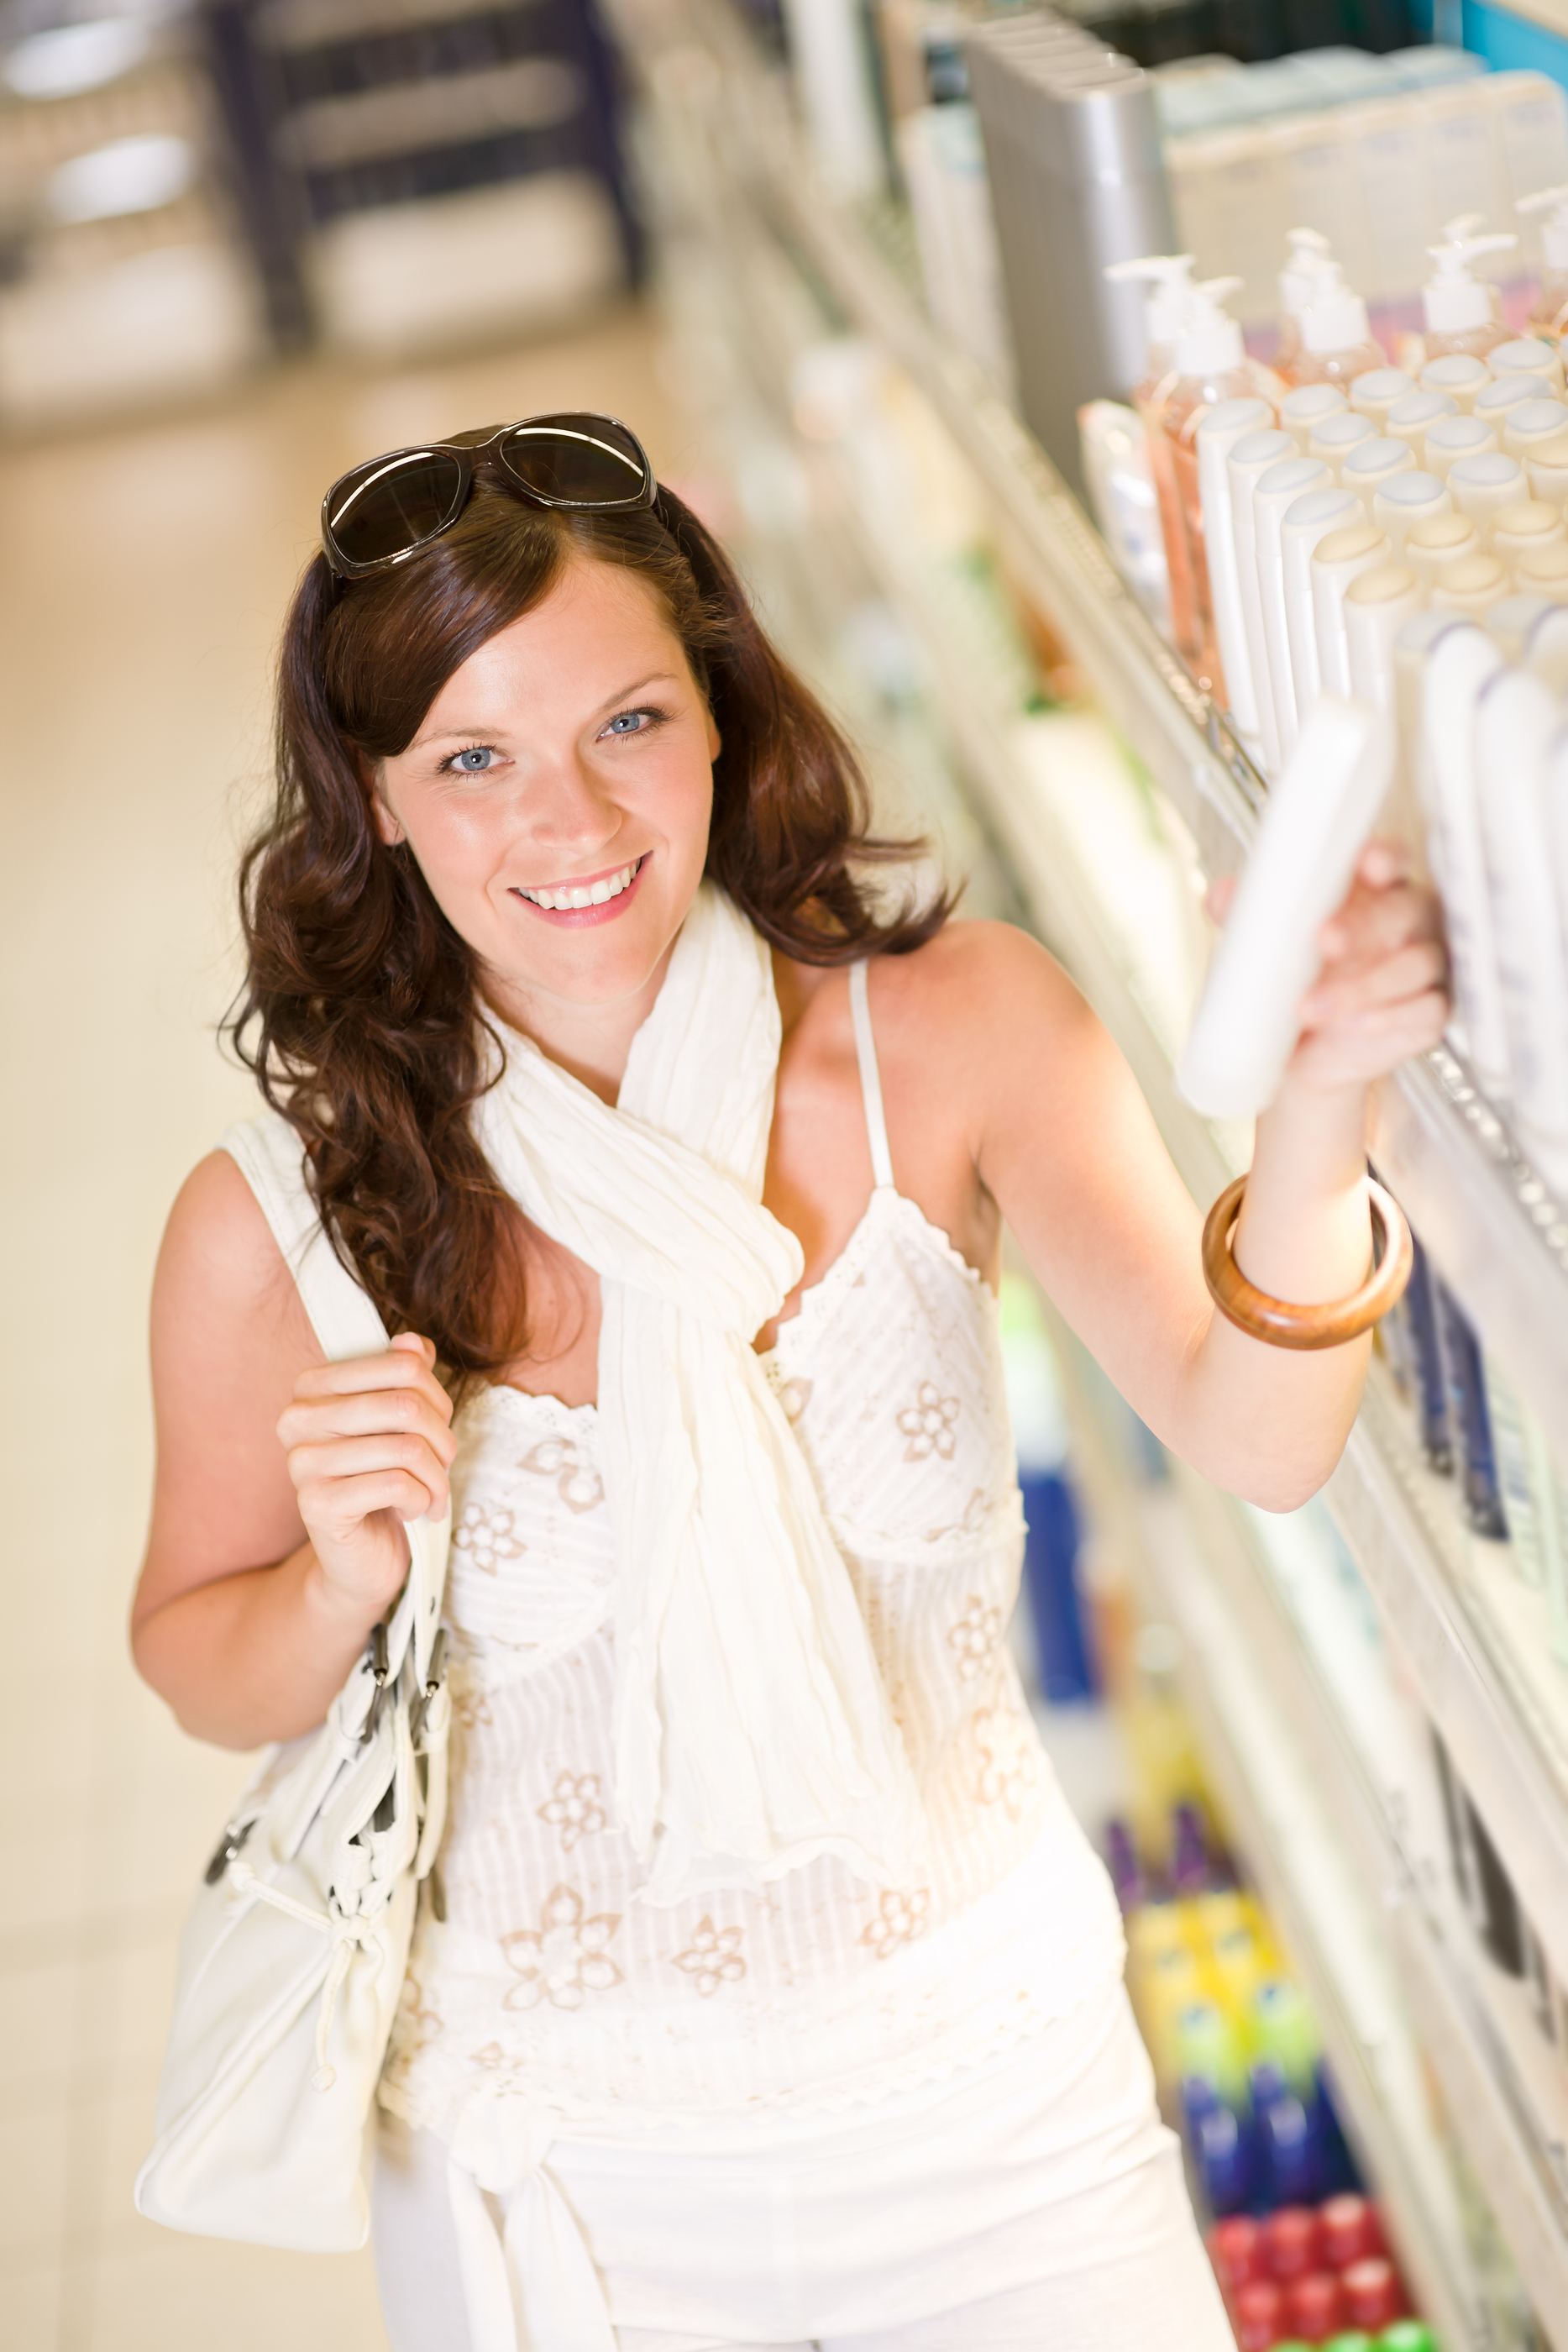 Shopping Cosmetics - Smiling Woman Choose Shampoo.jpg